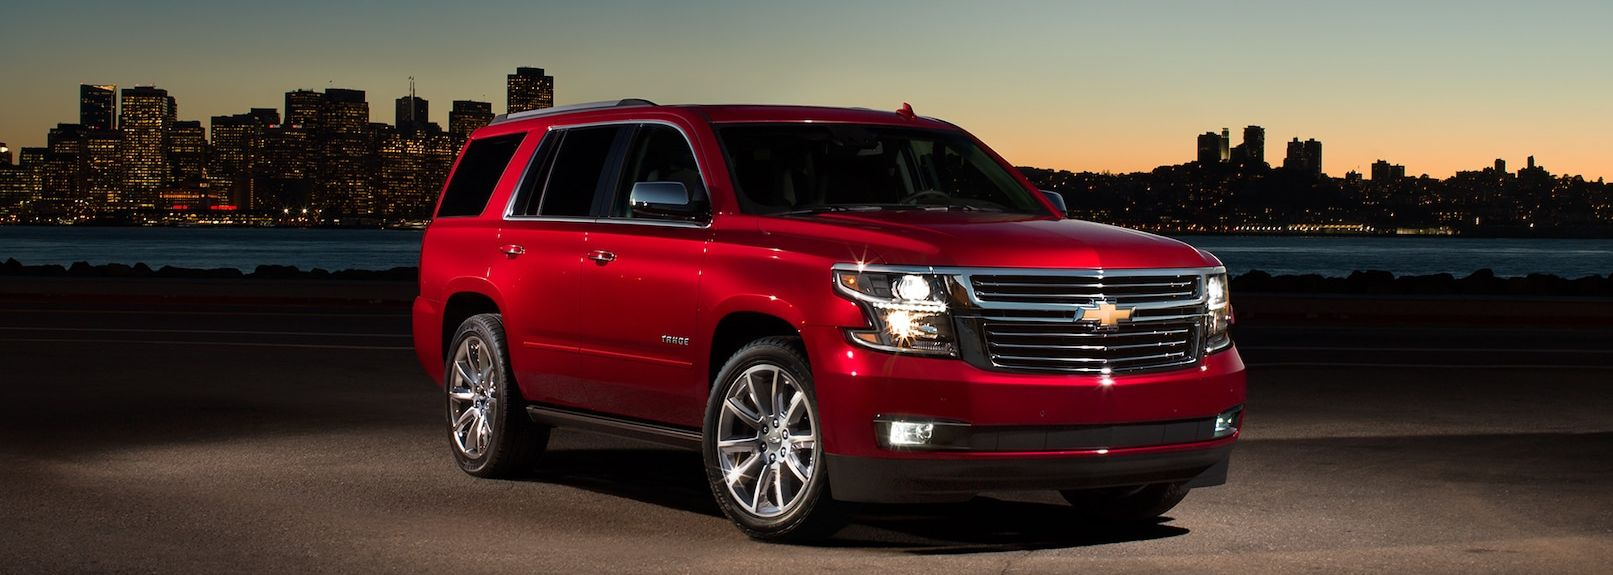 2019 Chevrolet Tahoe Leasing near Vienna, VA